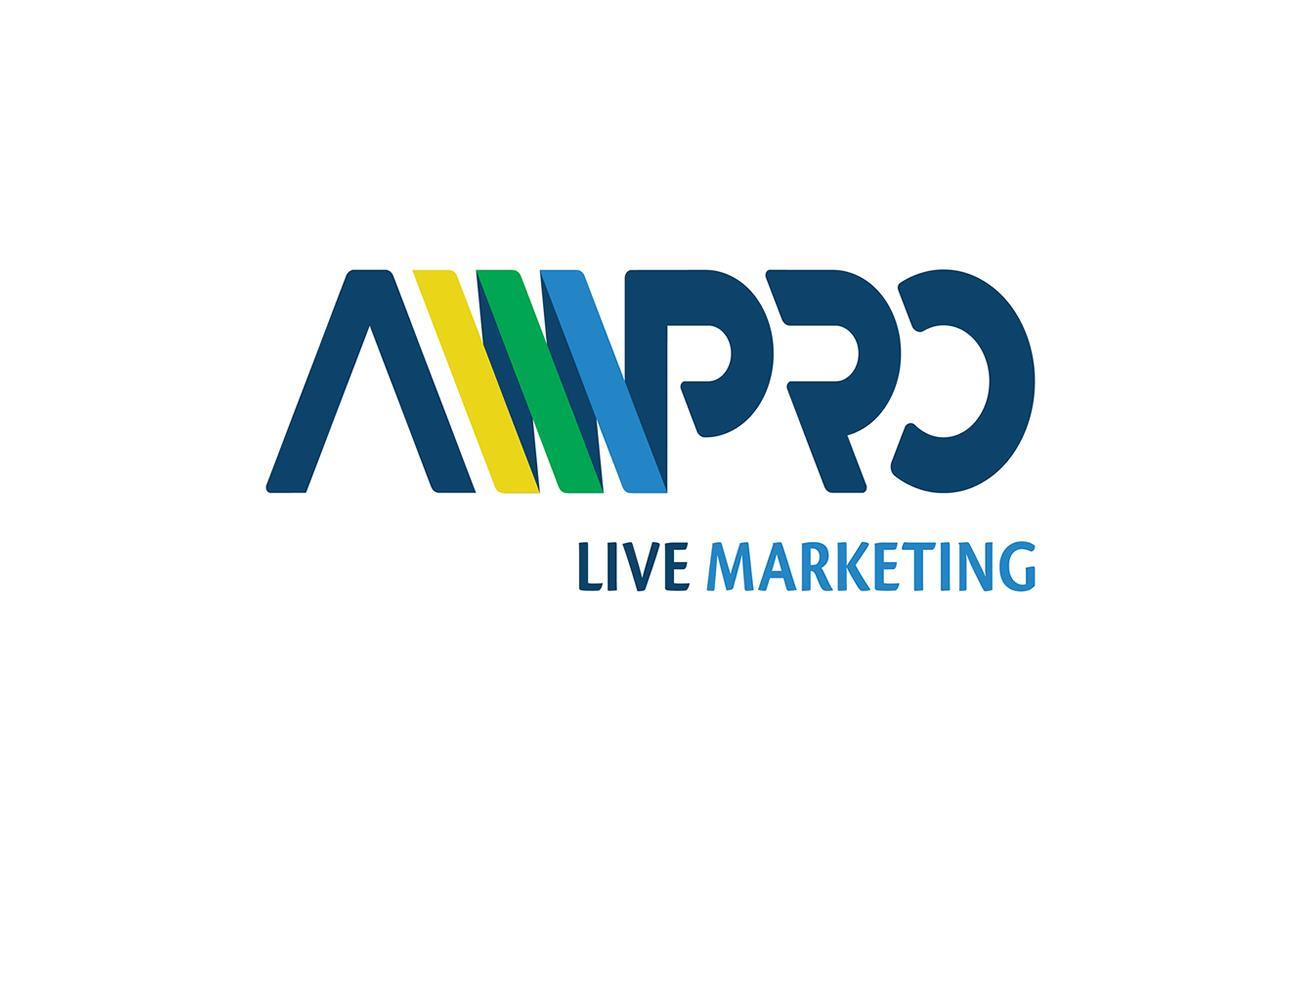 AMPRO e Fipe lançam curso de Live Marketing